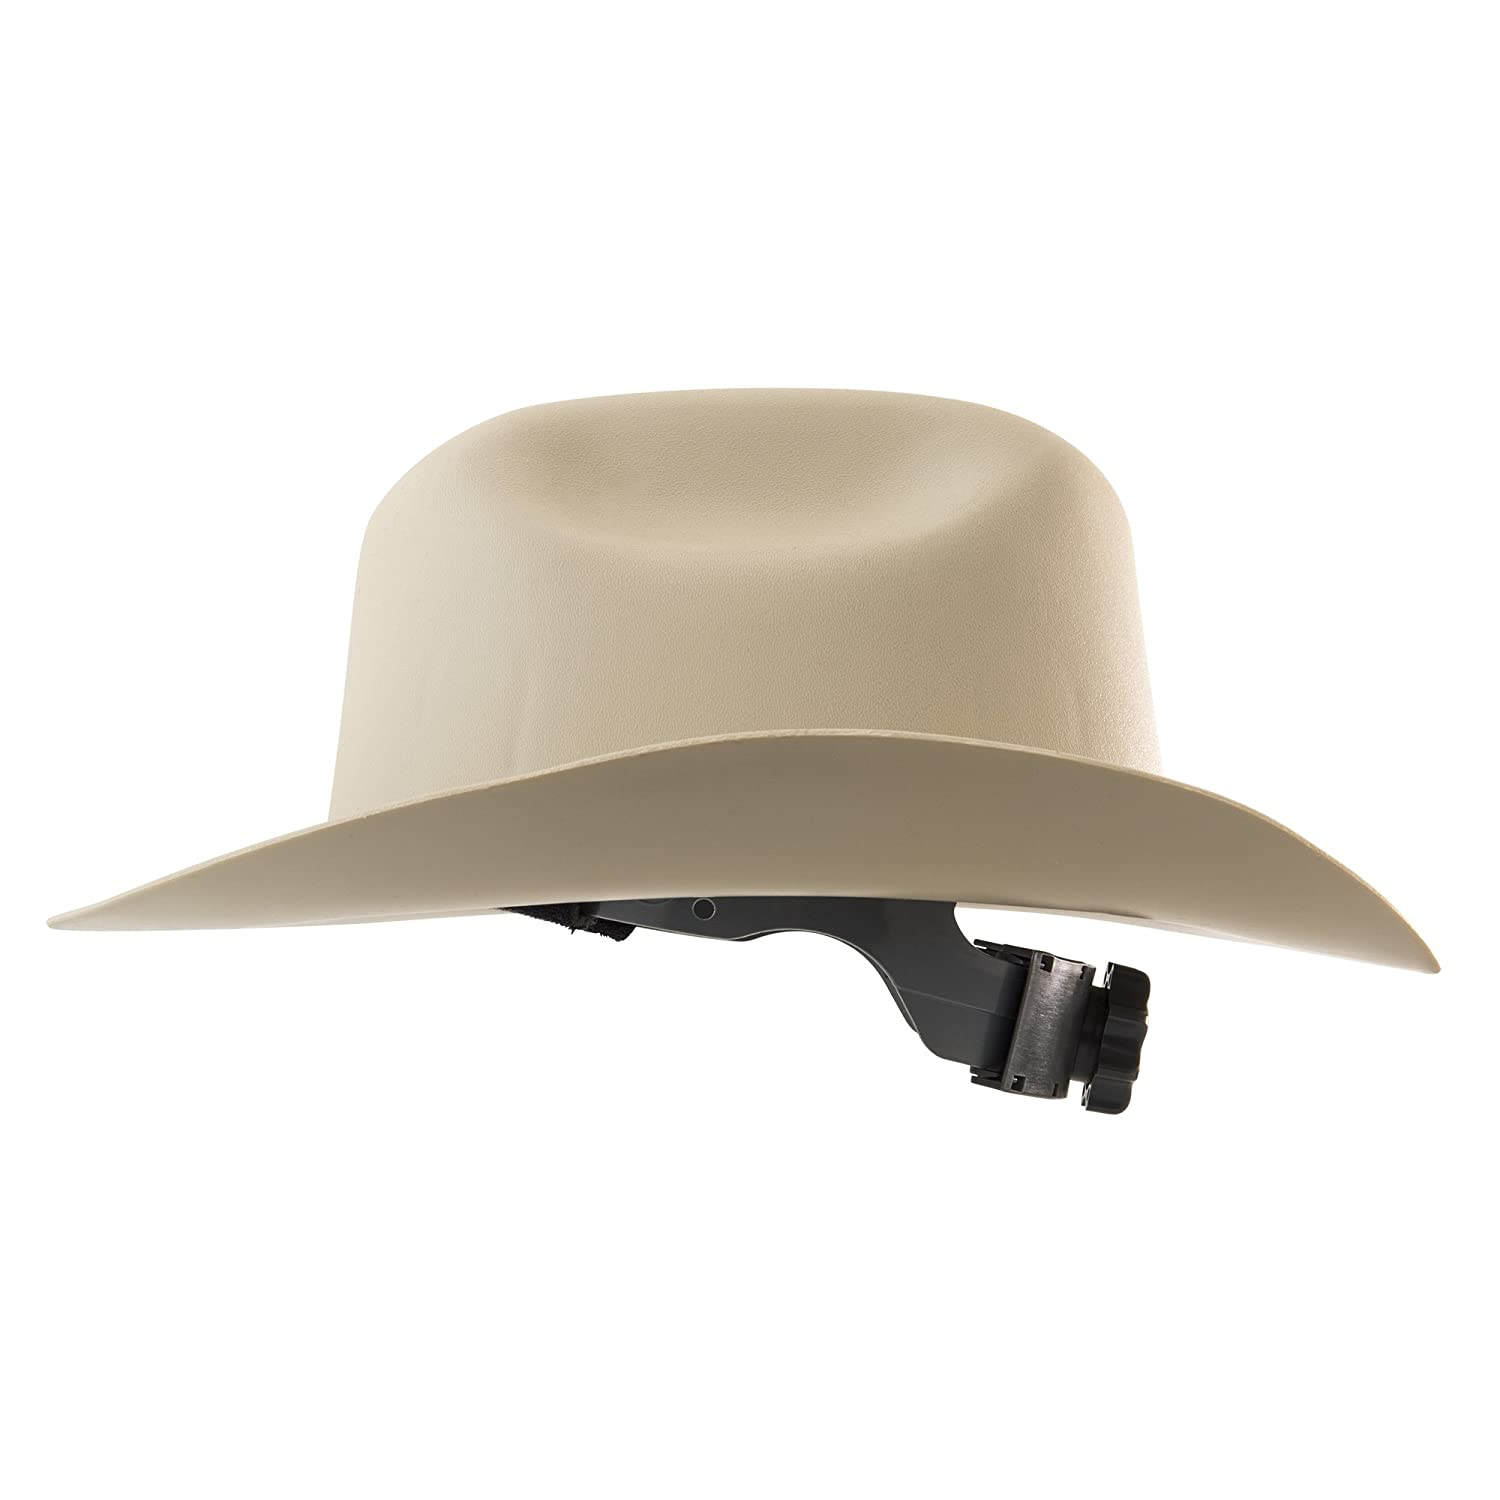 Jackson Safety Western Outlaw Hard Hat (19502), Wide 360-Degree Brim, 4-Pt. Ratchet Suspension, Tan, 4 Hats/Case: Hardhats: Amazon.com: Industrial & ...